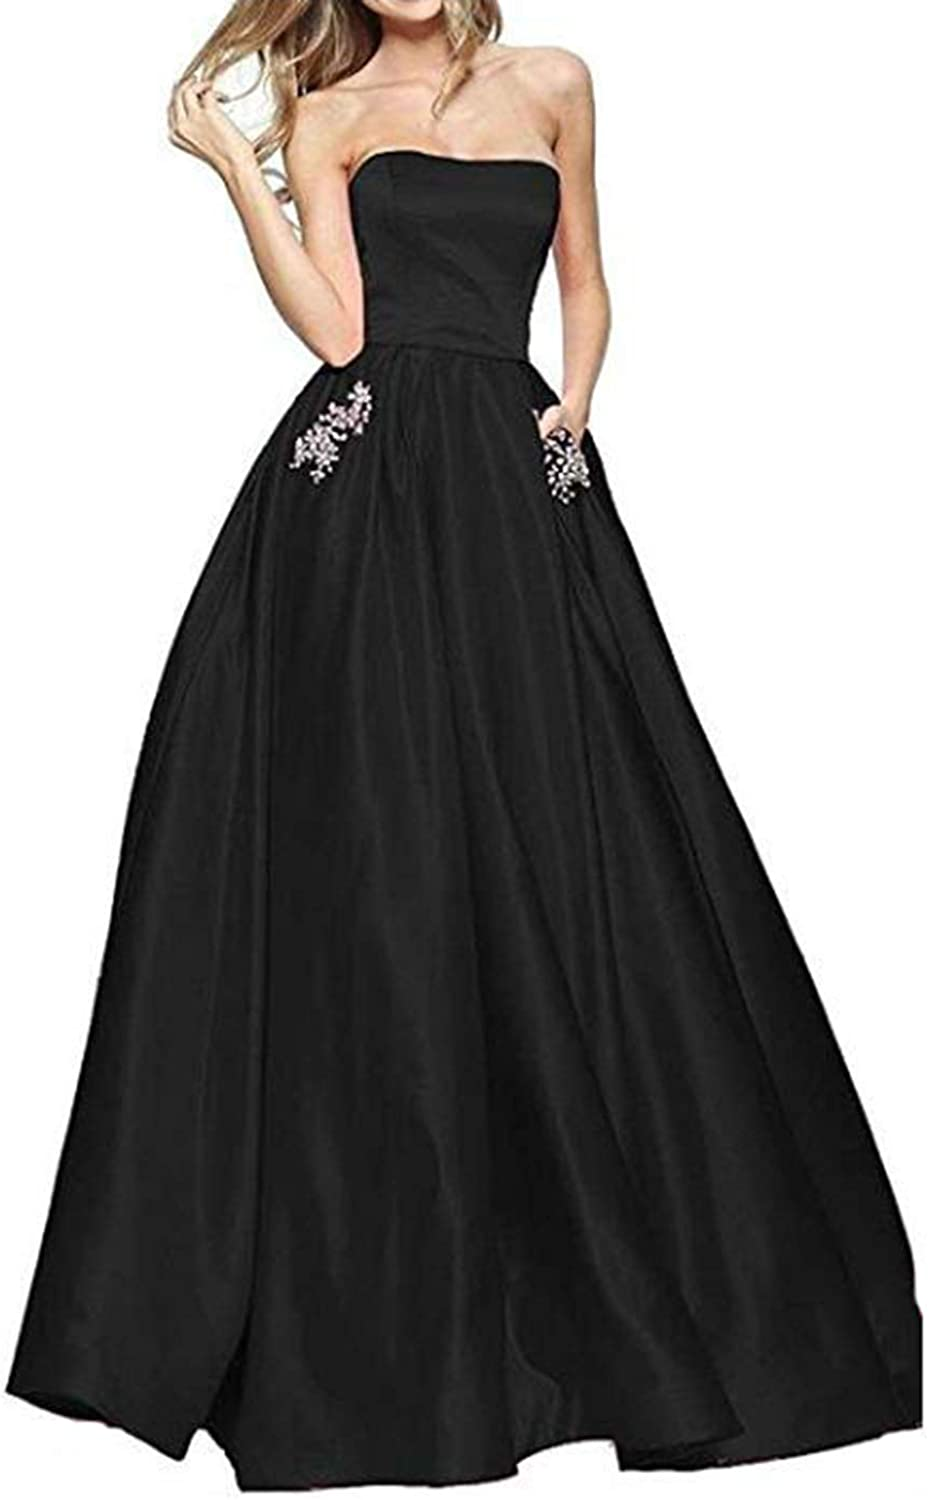 Alilith.Z Sexy Strapless Satin Prom Dresses Rhinestones Beaded Long Formal Evening Dress Party Gowns for Women with Pockets